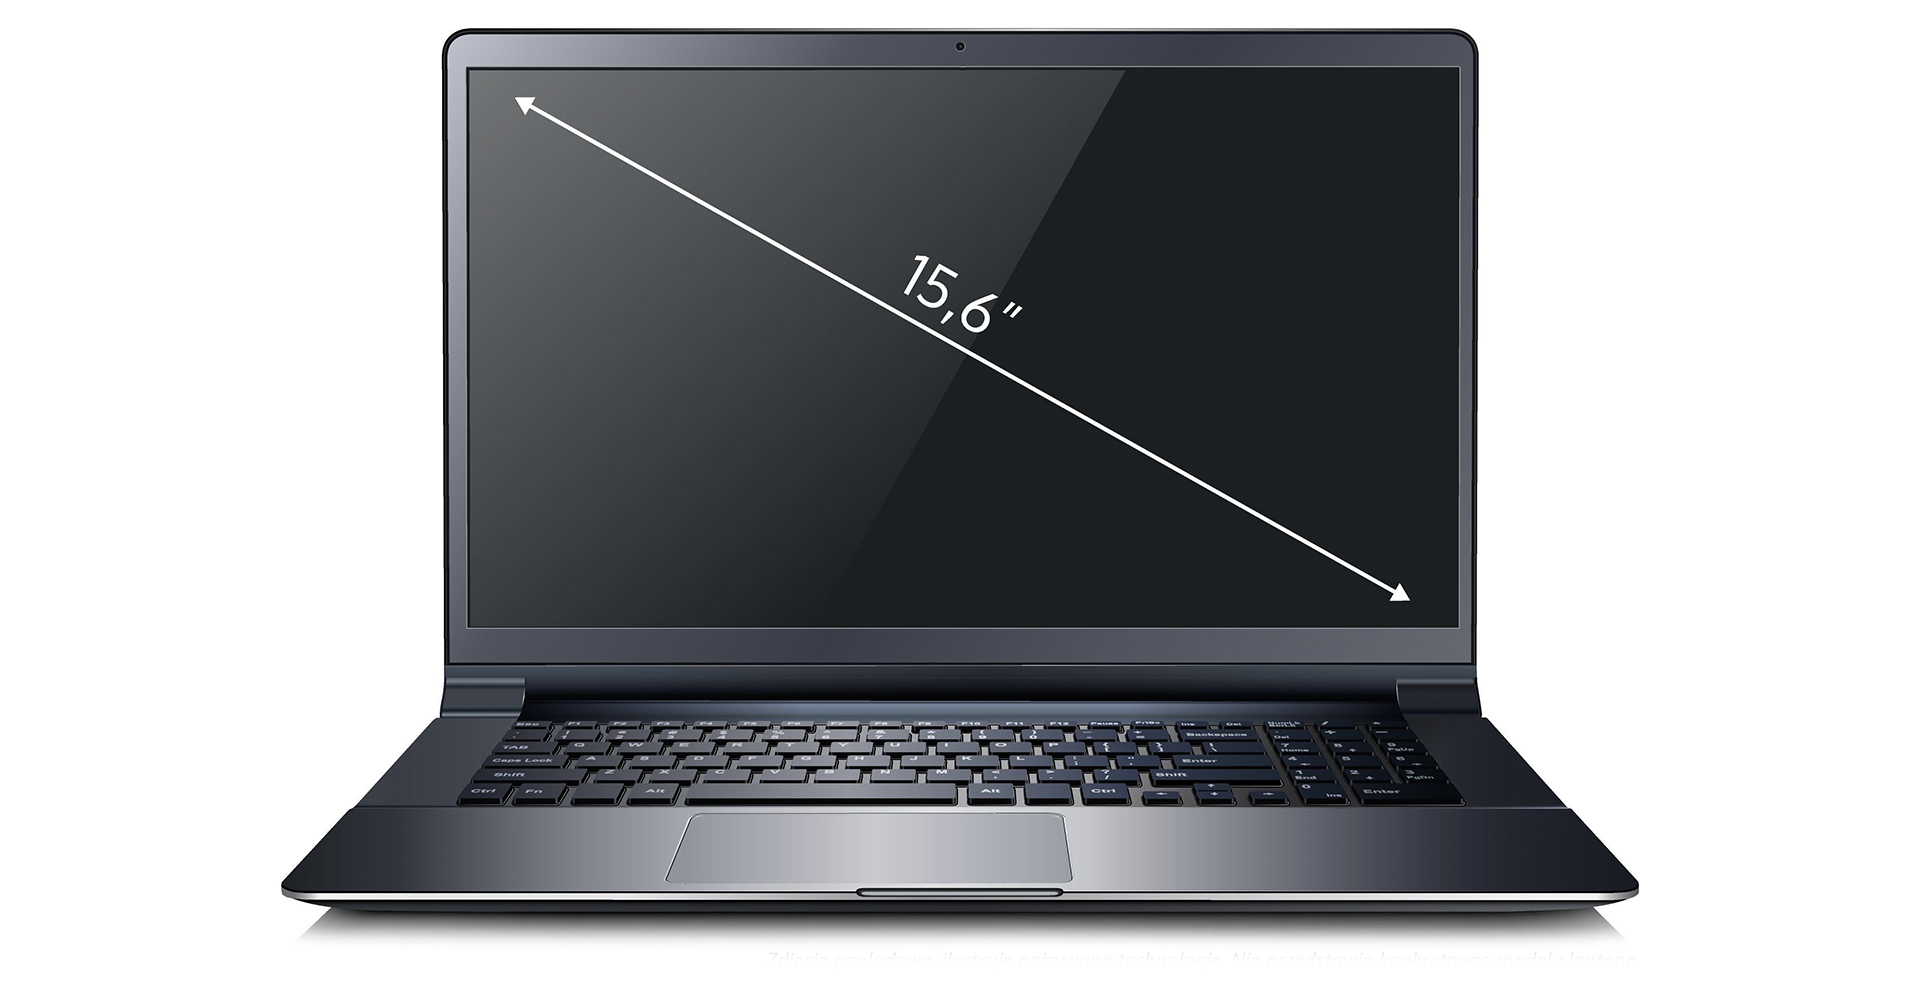 Fujitsu LifeBook A357 (S26391K425V300) 8 GB RAM/ 512 GB SSD/ 1TB HDD/ Windows 10 Pro                             15.6-tollise diagonaaliga